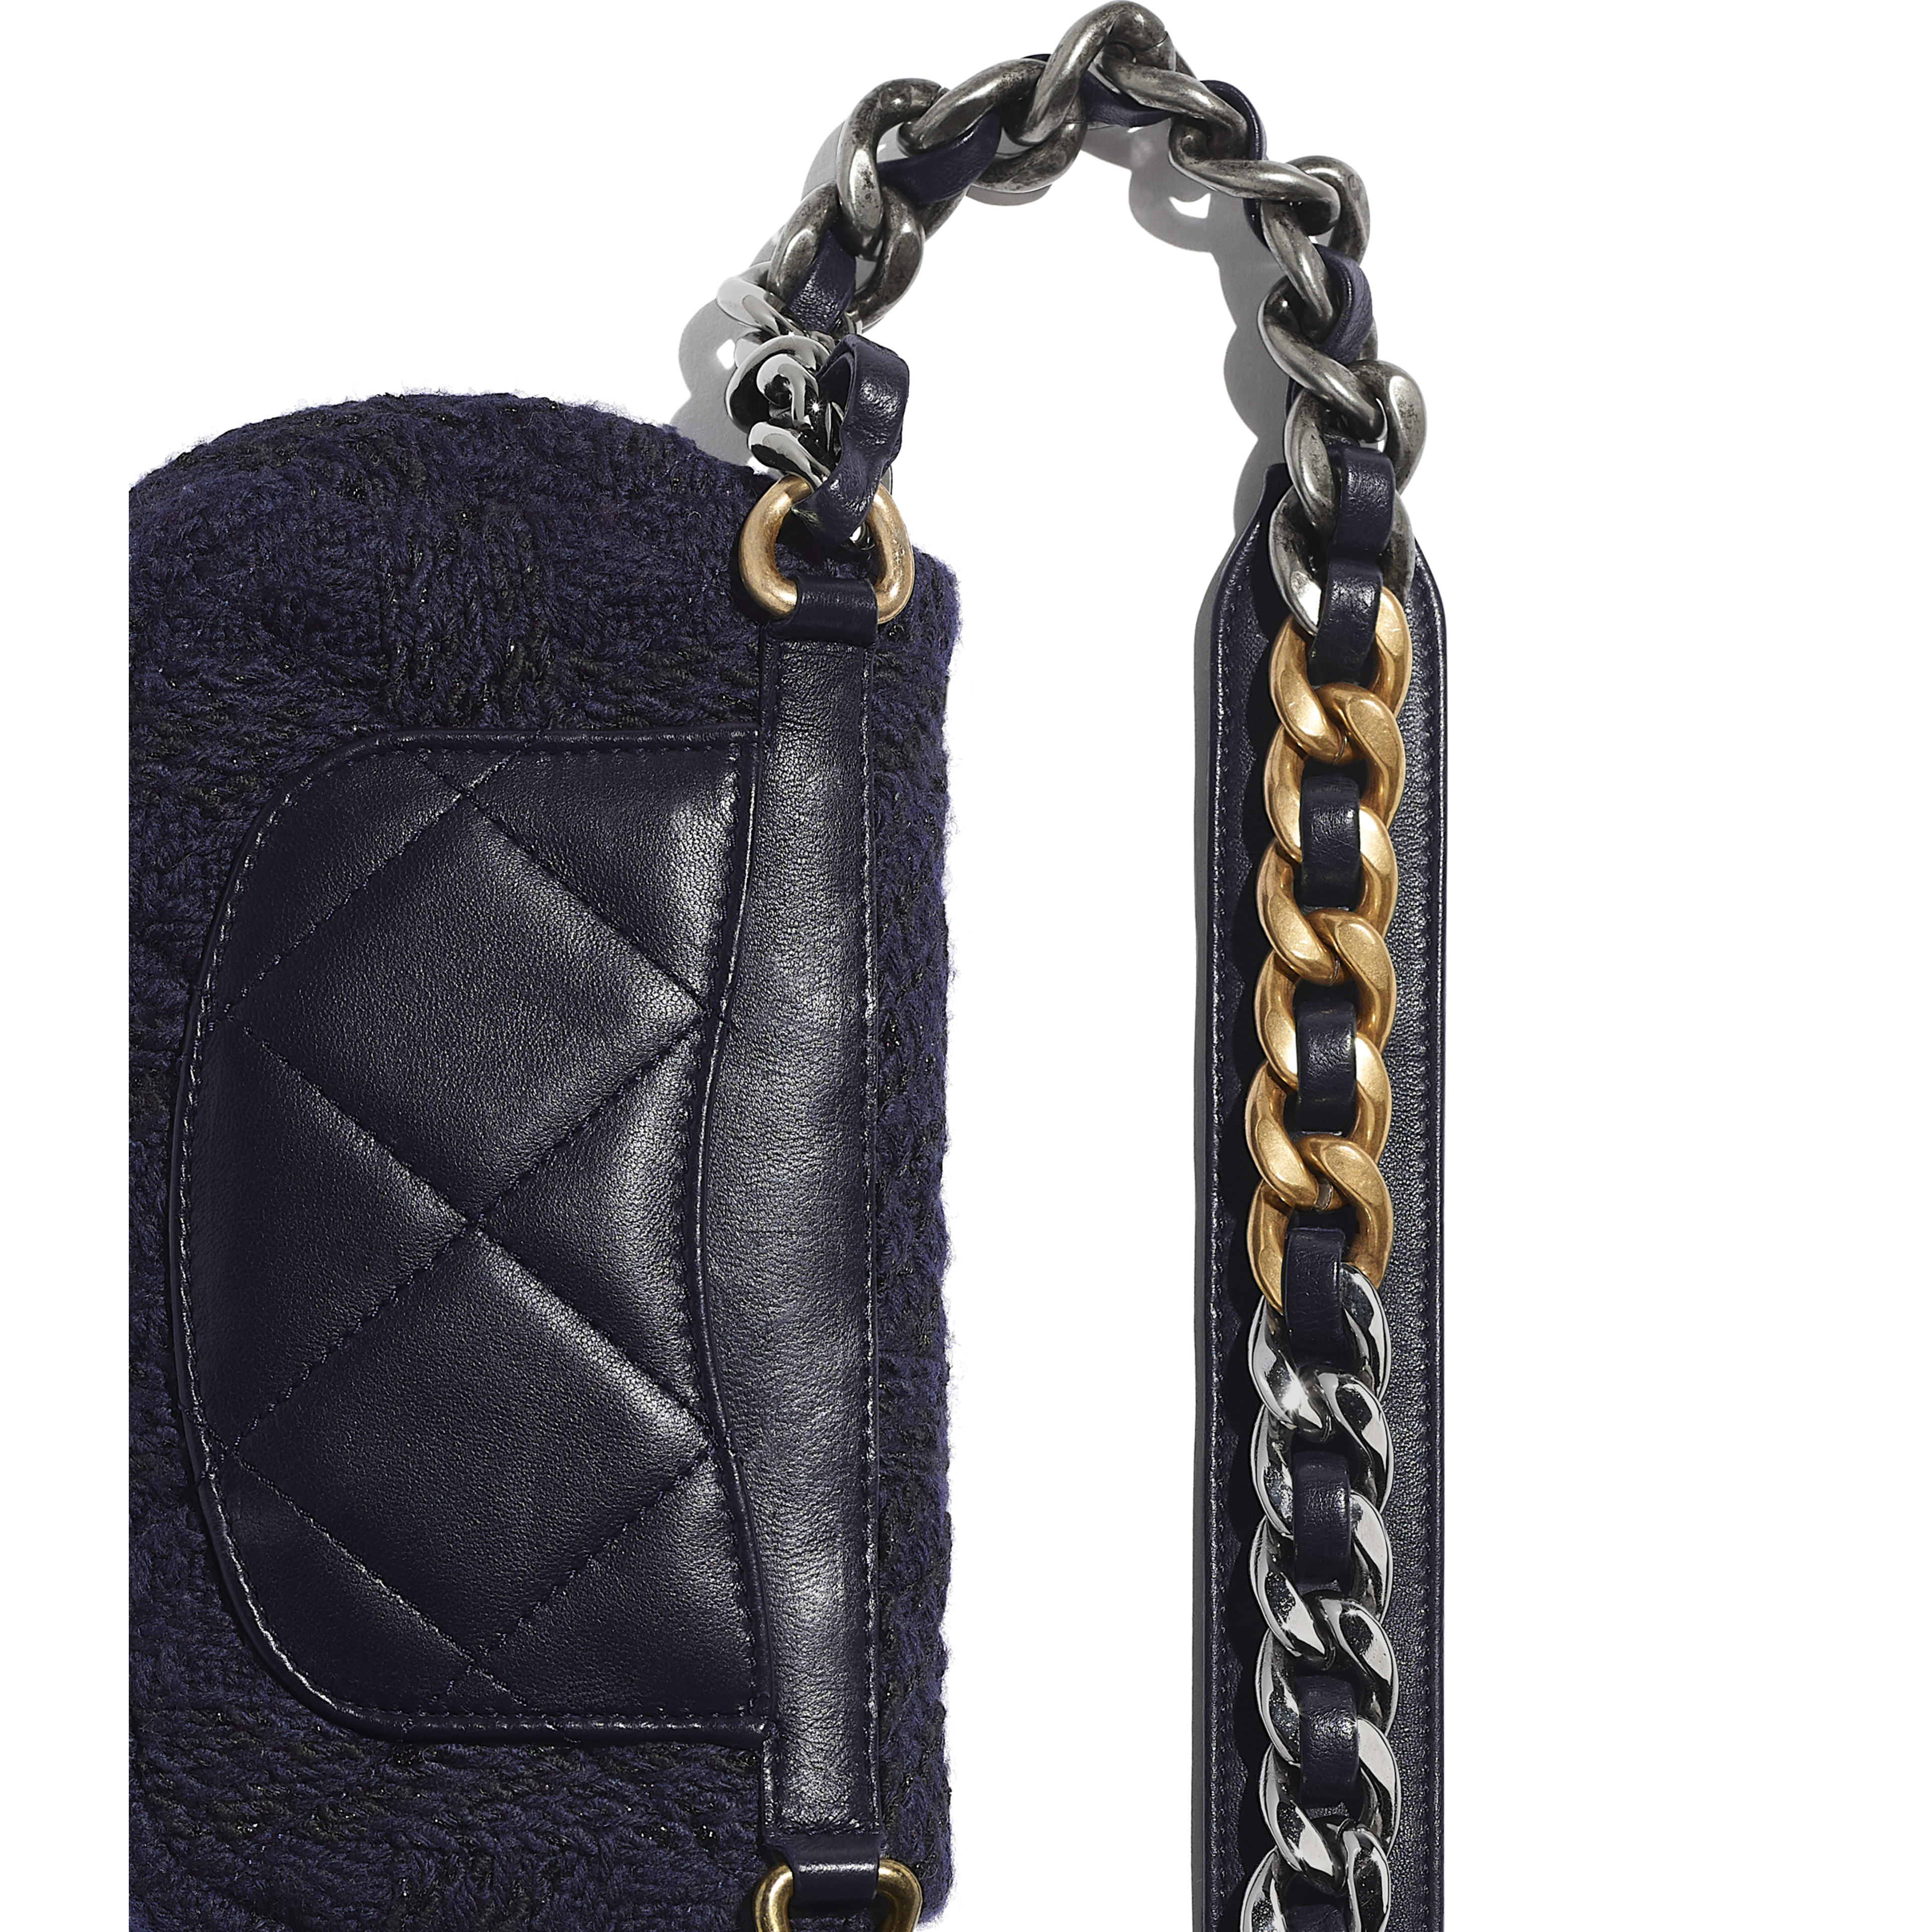 CHANEL 19 Waist Bag - Navy Blue & Black - Wool Tweed, Gold-Tone, Silver-Tone & Ruthenium-Finish Metal - Extra view - see full sized version